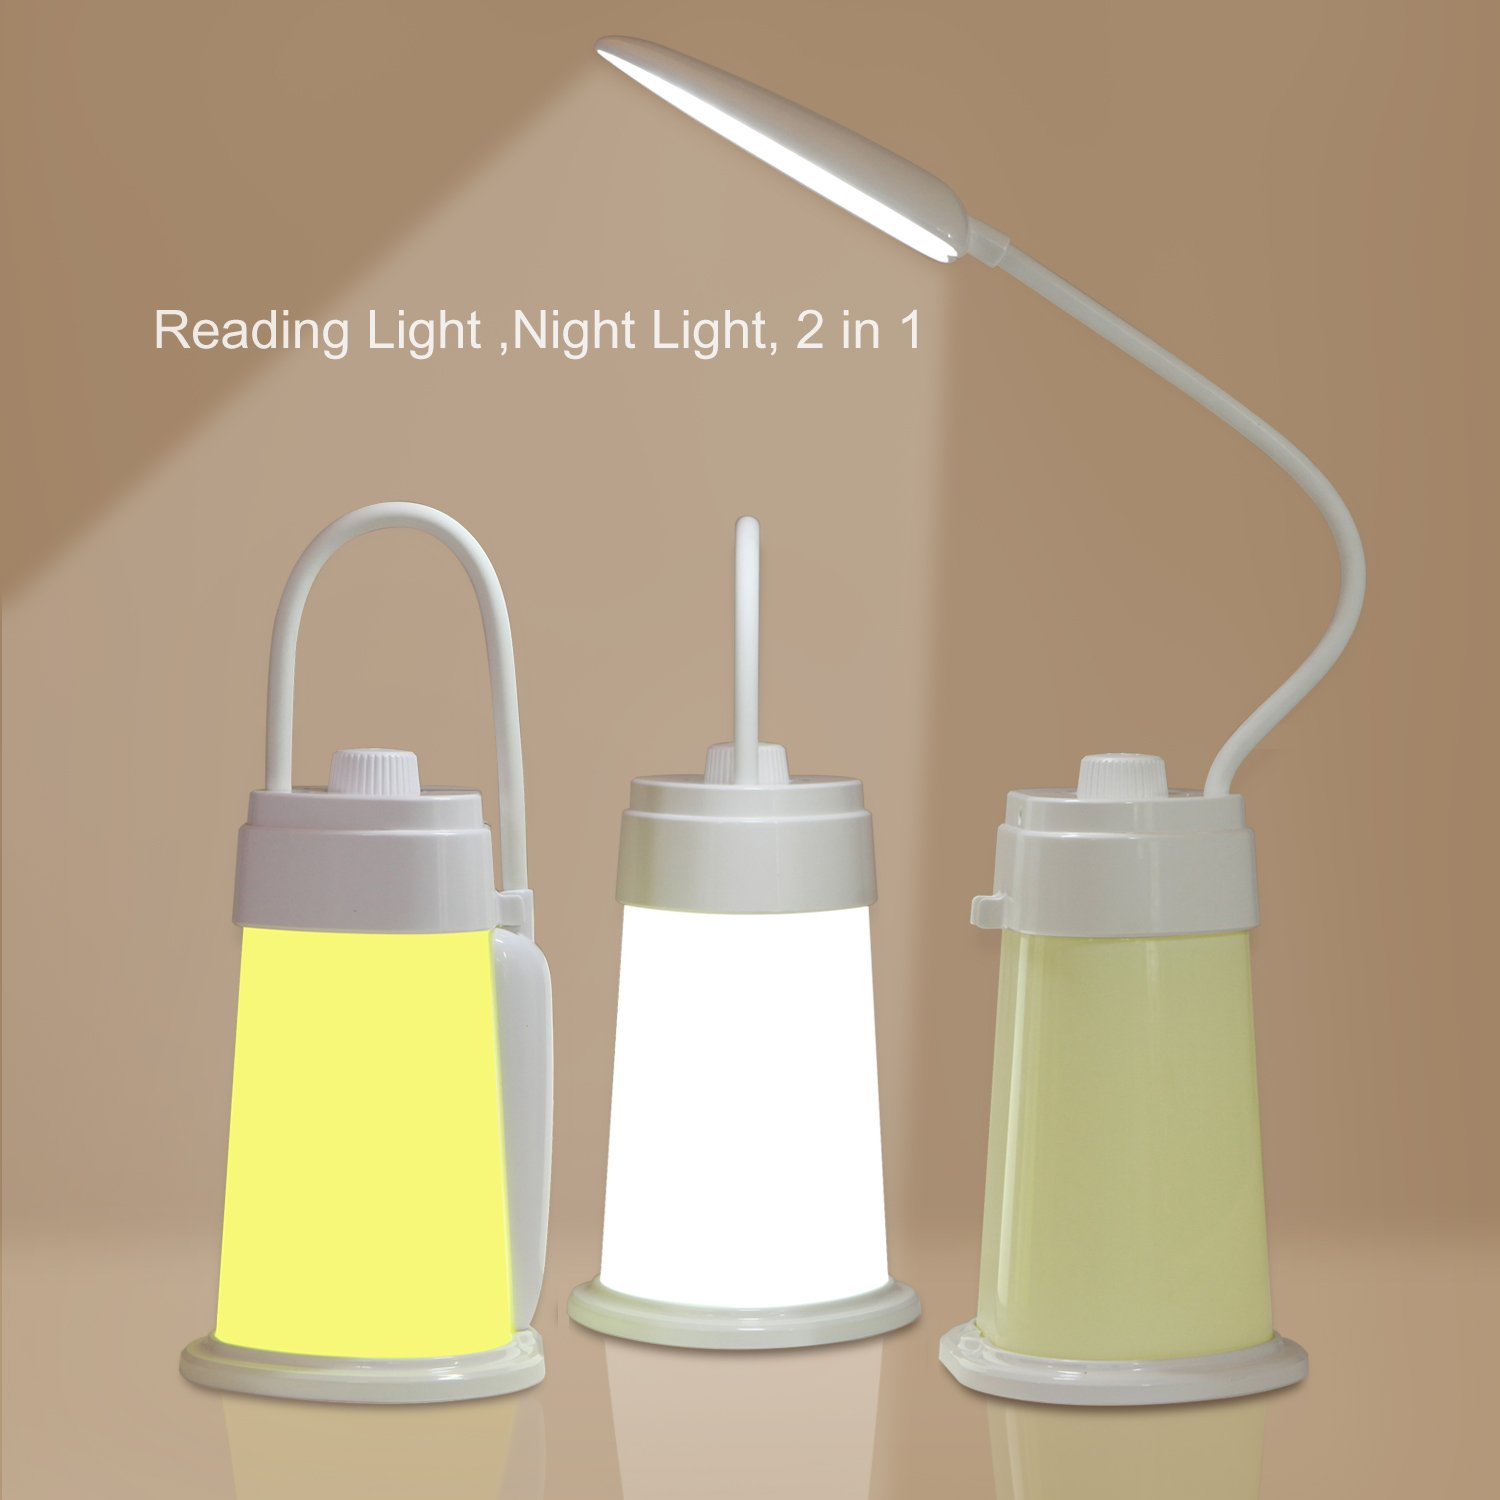 Rechargeable Battery Powered Reading Book Light for Bed, Portable Desk Table Lamp USB Charging Port for Kids Students Bedroom Bedside Nightstand Camping Tent Lantern,Baby Nursery Night Light